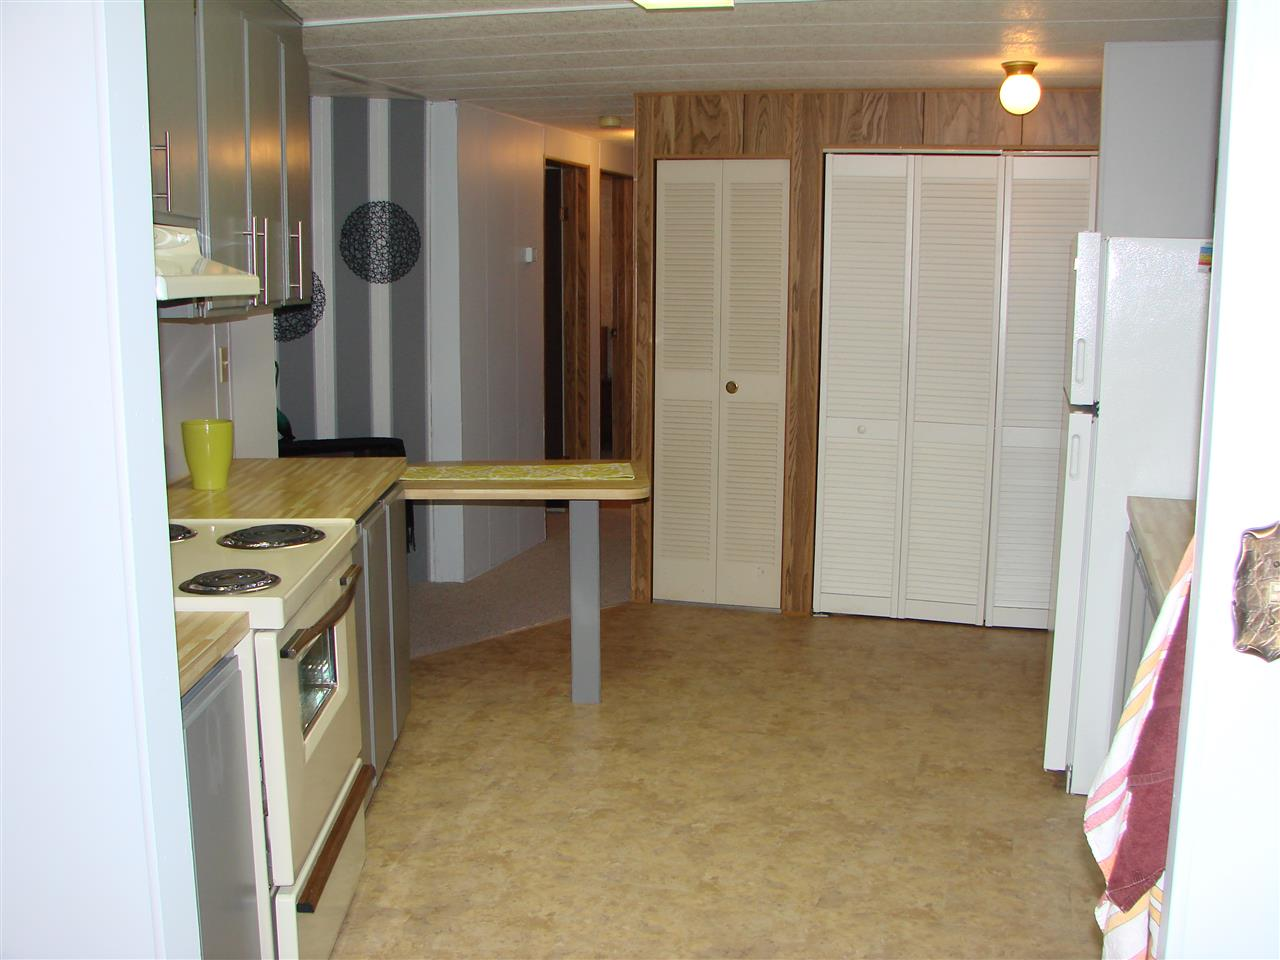 Photo 6: Photos: 25 4496 SUNSHINE COAST Highway in Sechelt: Sechelt District Manufactured Home for sale (Sunshine Coast)  : MLS® # R2217808